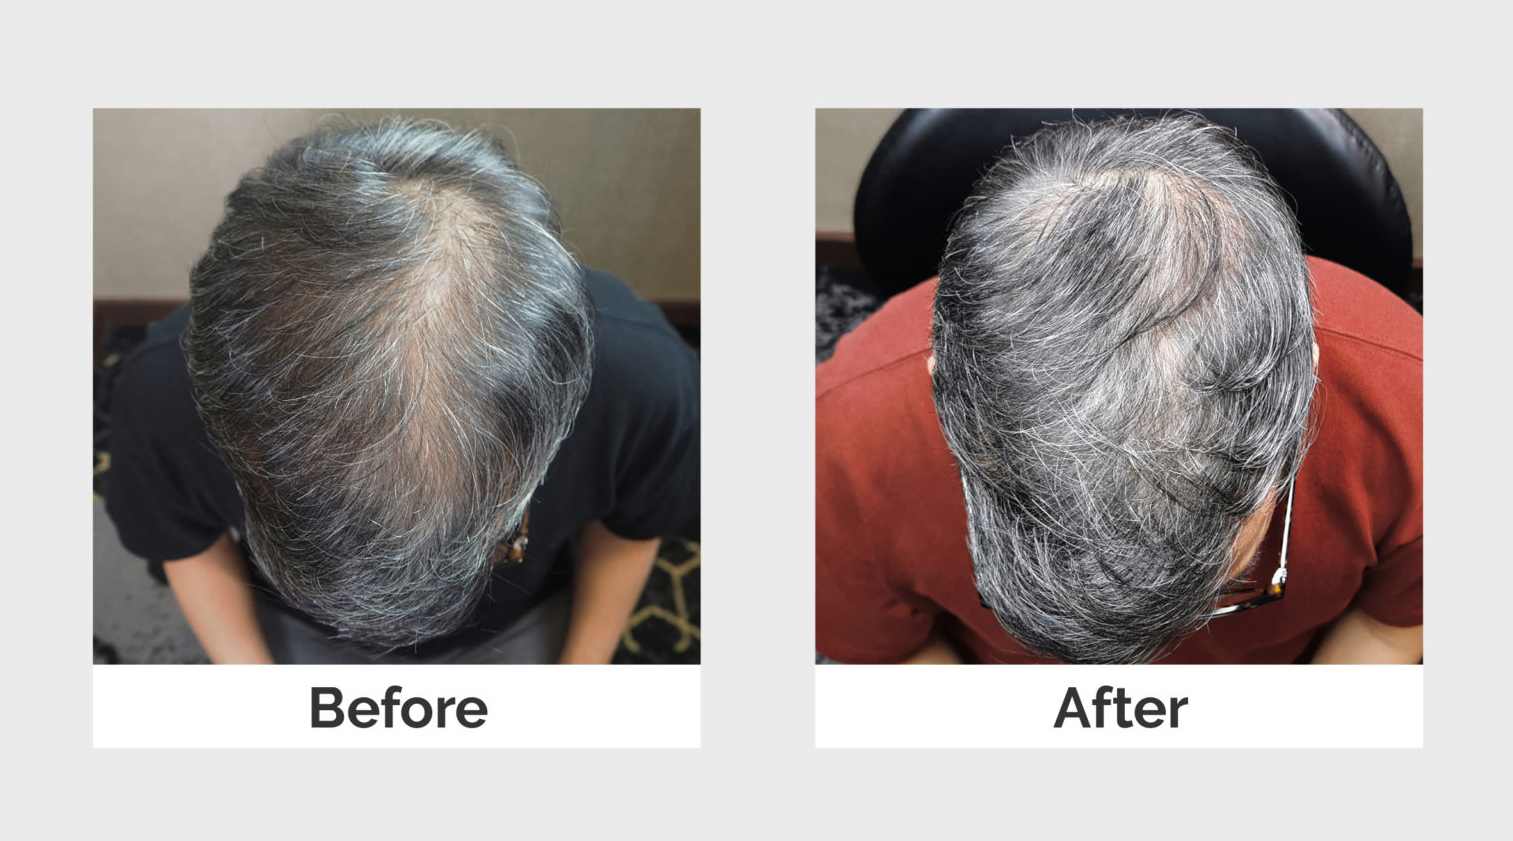 Before and After Platelet-Rich Plasma Therapy